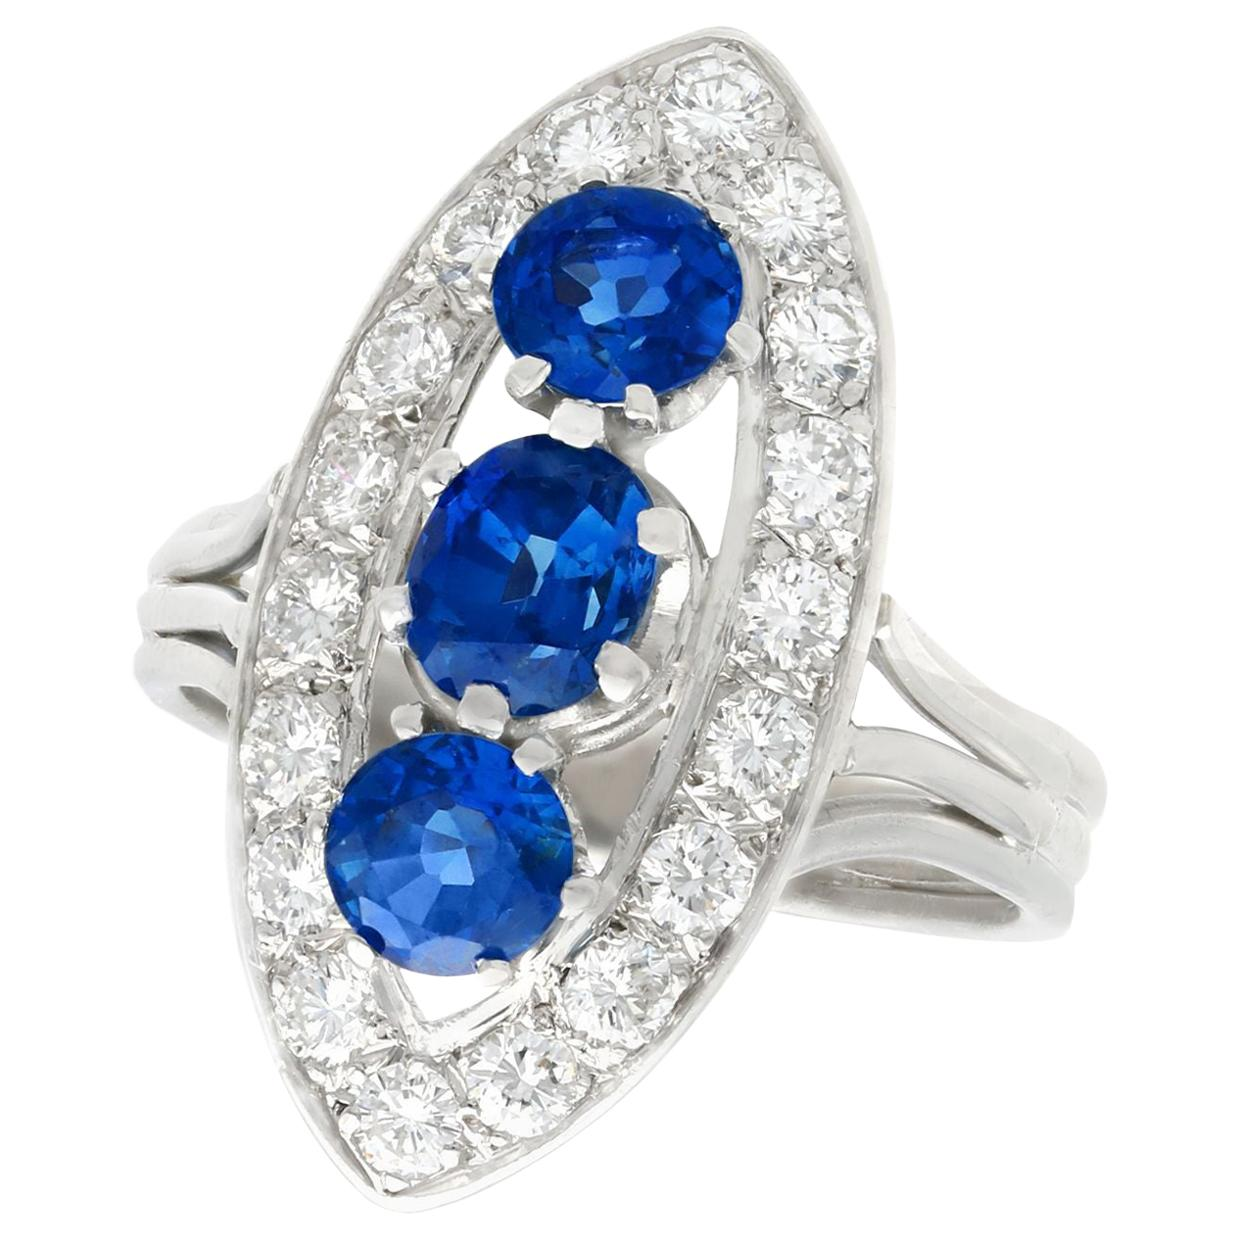 1.60 Carat Sapphire and 1.05 Carat Diamond White Gold Cluster Ring